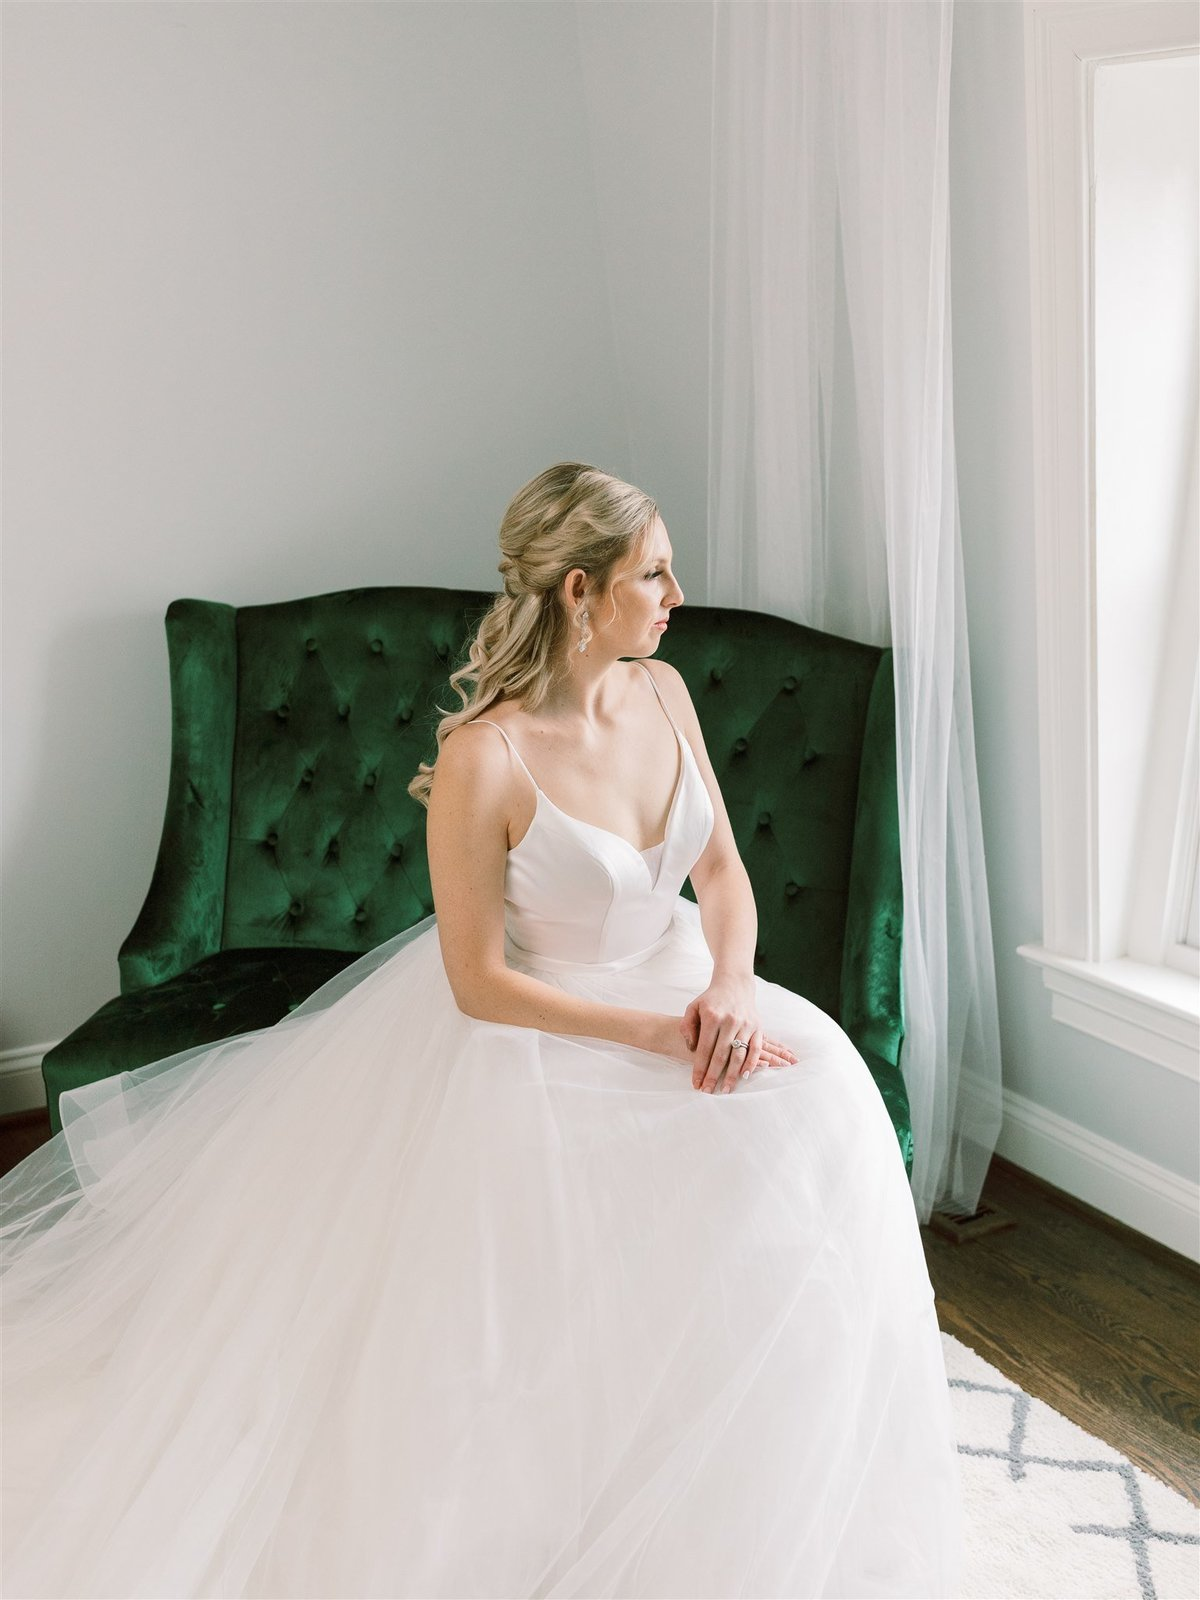 Bridal Suites in Downtown Leesburg Virginia